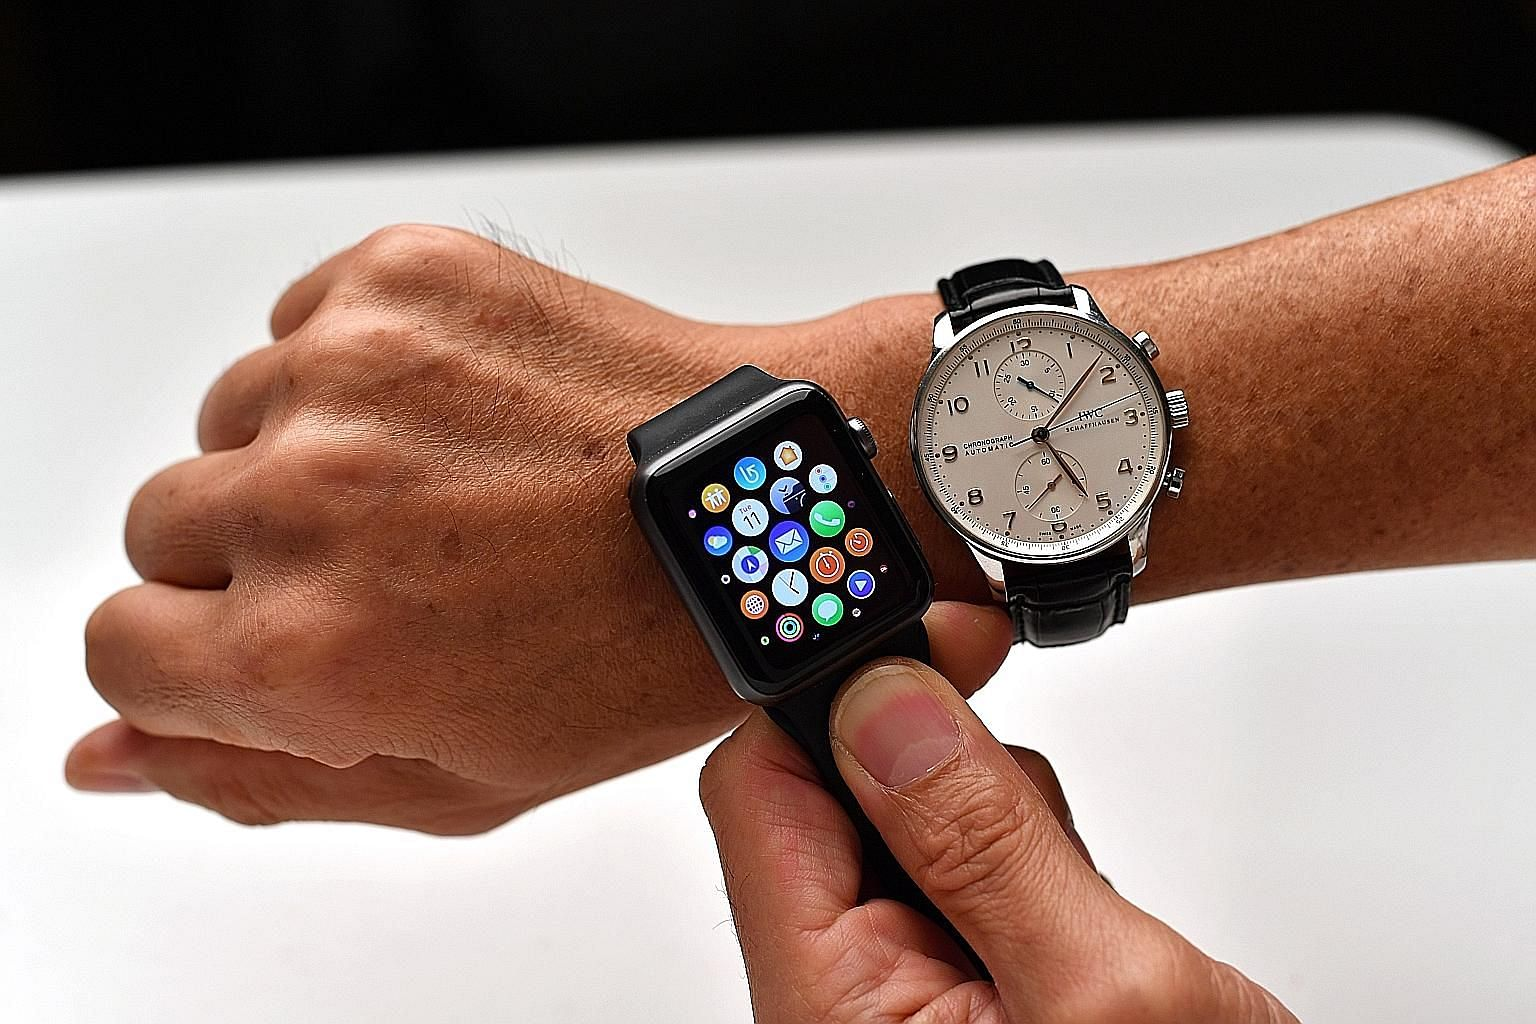 Smartwatches such as the Apple watch (above left) have multiple functions and tell time more accurately while mechanical watches such as the $12,000 IWC timepiece (right) are known for their engineering and artistic expression. Luxury brands that hav